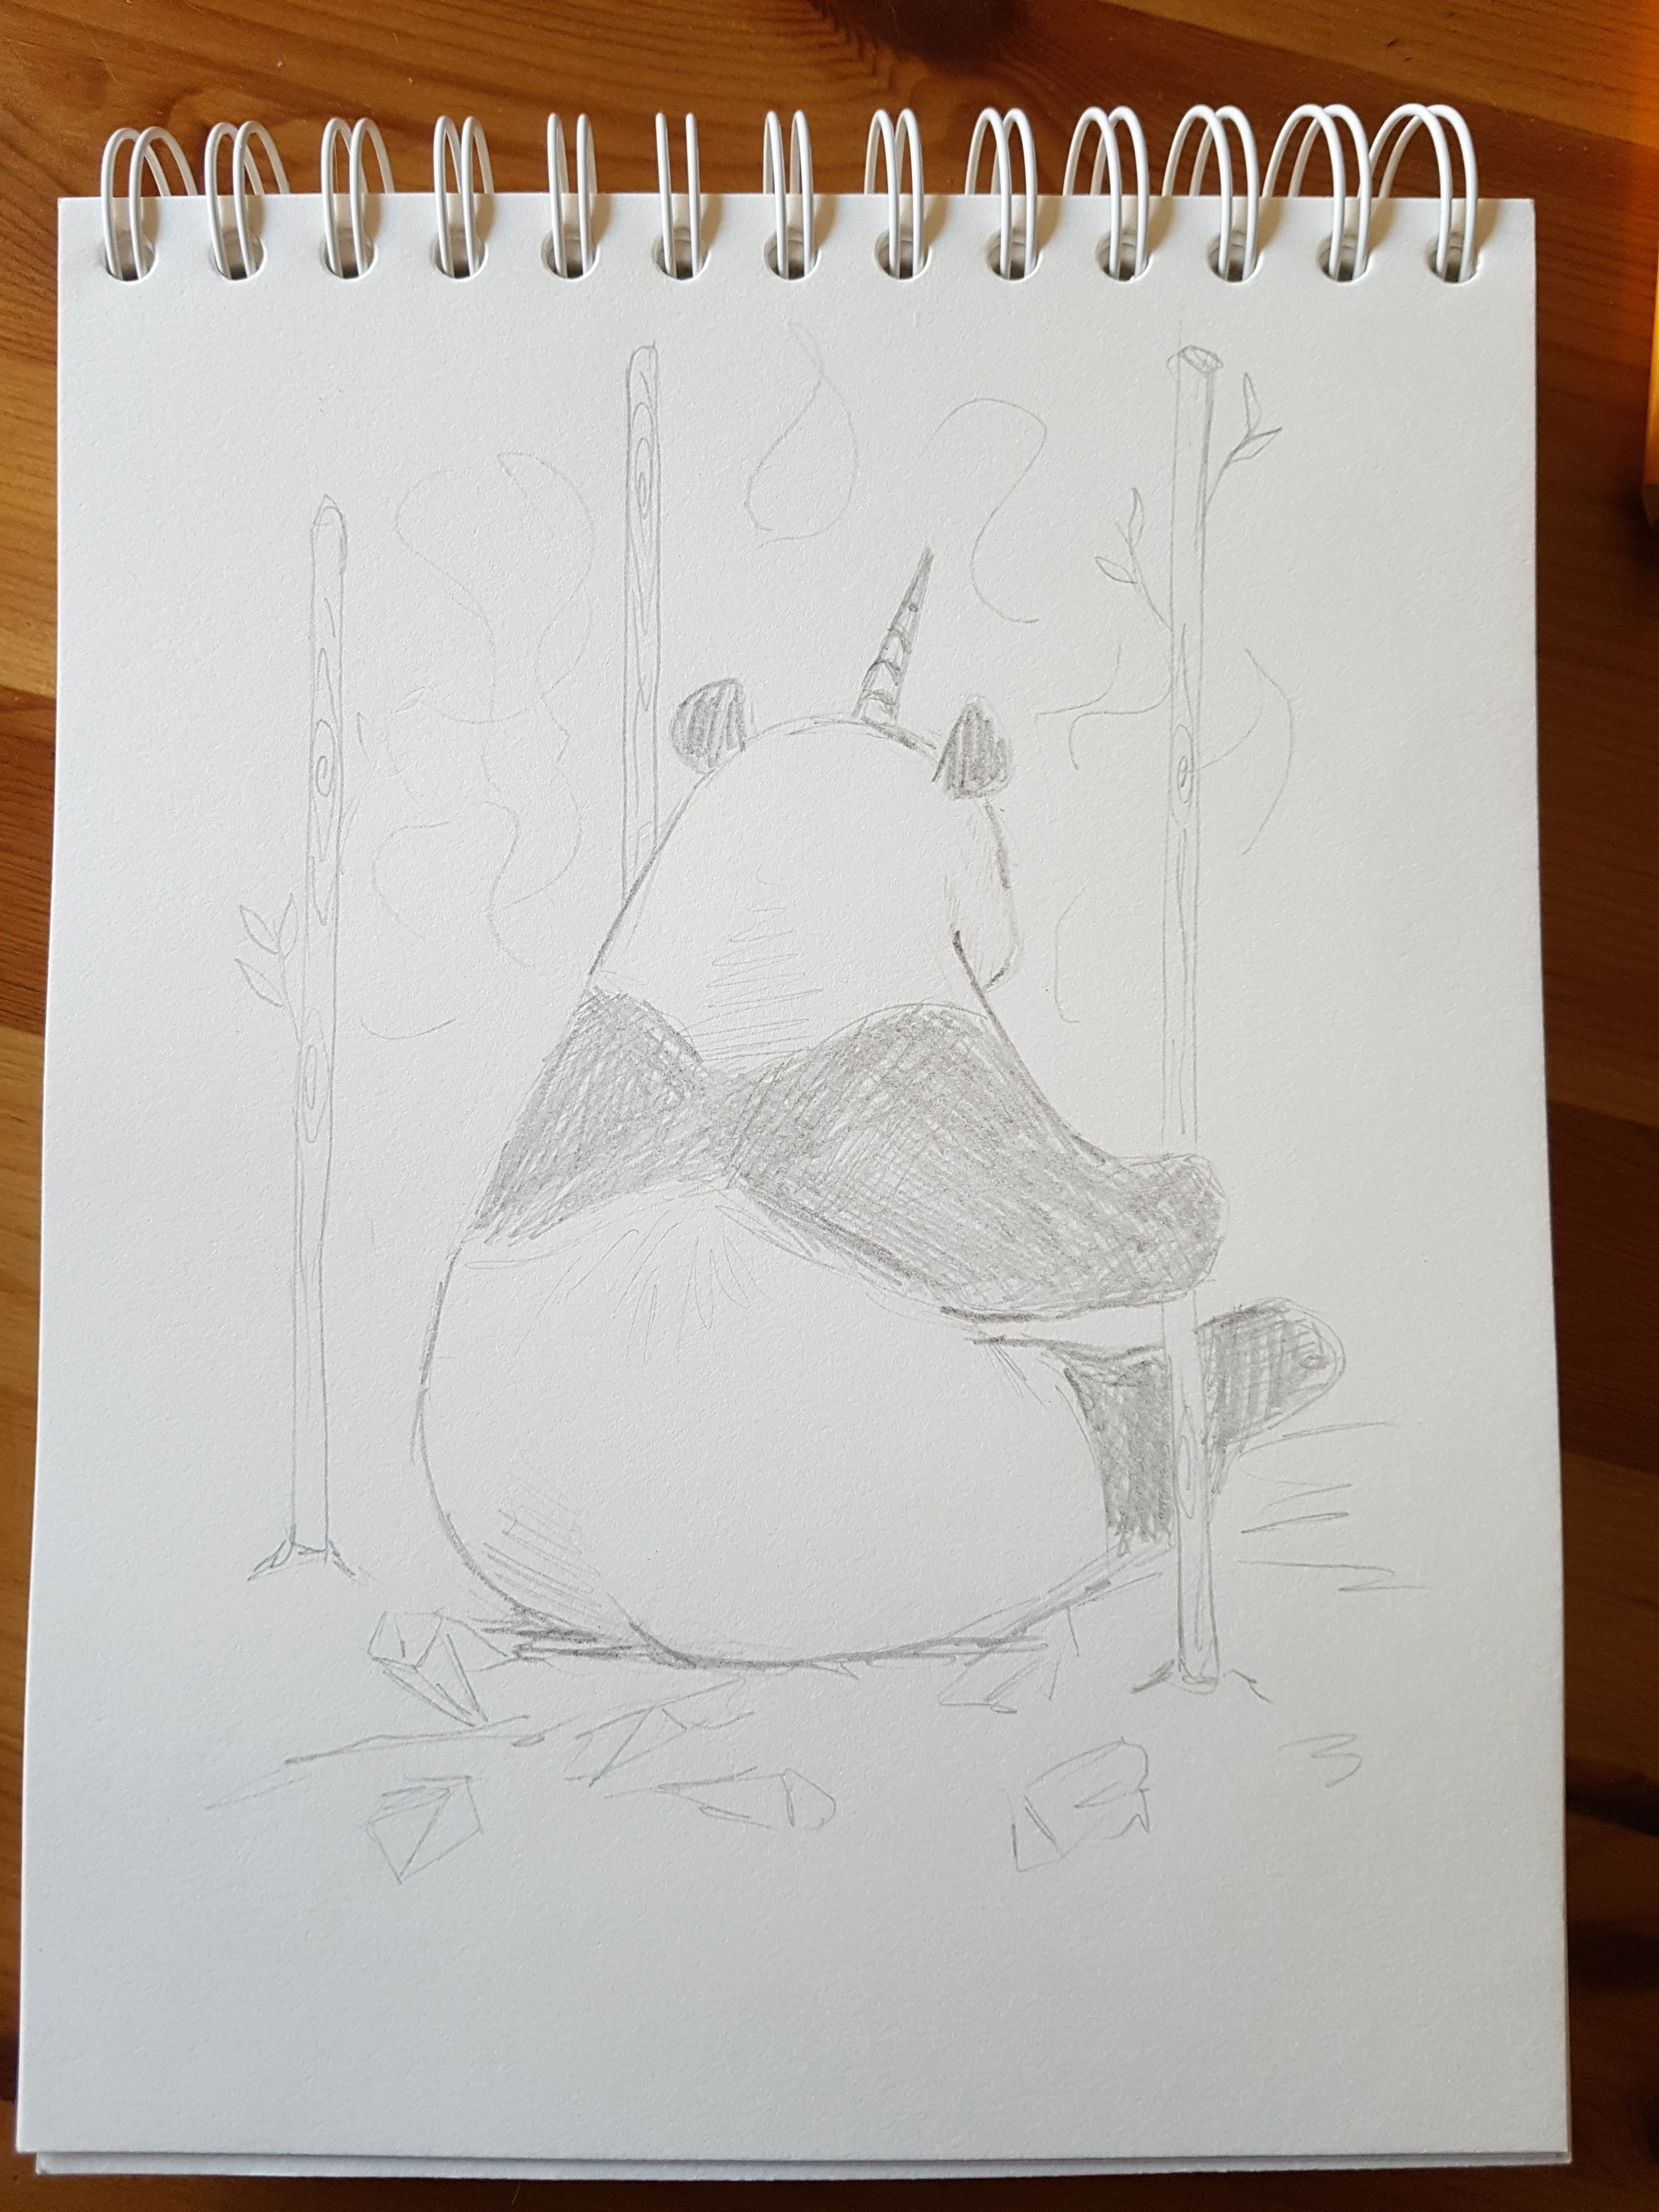 """Artist Sketch for """"3 of Wands"""" - the panda with a magical unicorn horn is surrounded by sparkly crystals, looking excitedly into the future and ready to manifest his dreams. Pamela Chen (creator of Crystal Unicorn Tarot) is one of the people that inspired me to begin creating this deck and I am grateful that she helped me unlock the panda potential for this deck. This is the artist sketch done by Celia - after I conveyed my concept to her!"""